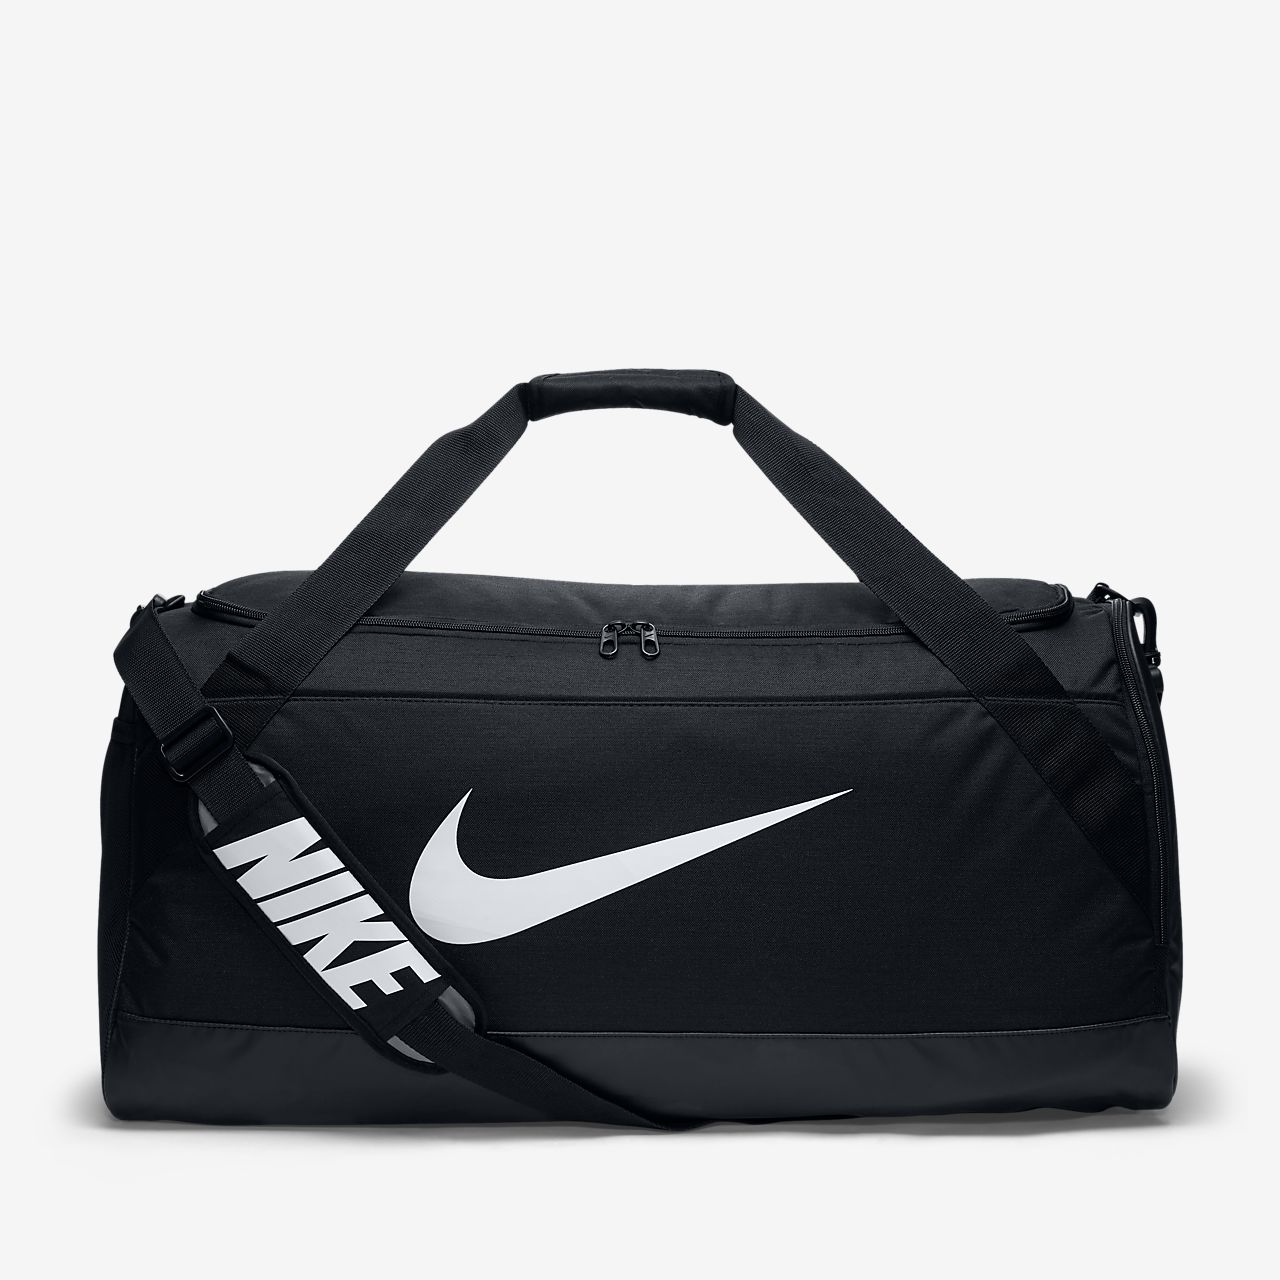 d463624396 Nike Brasilia (Large) Training Duffel Bag. Nike.com AU